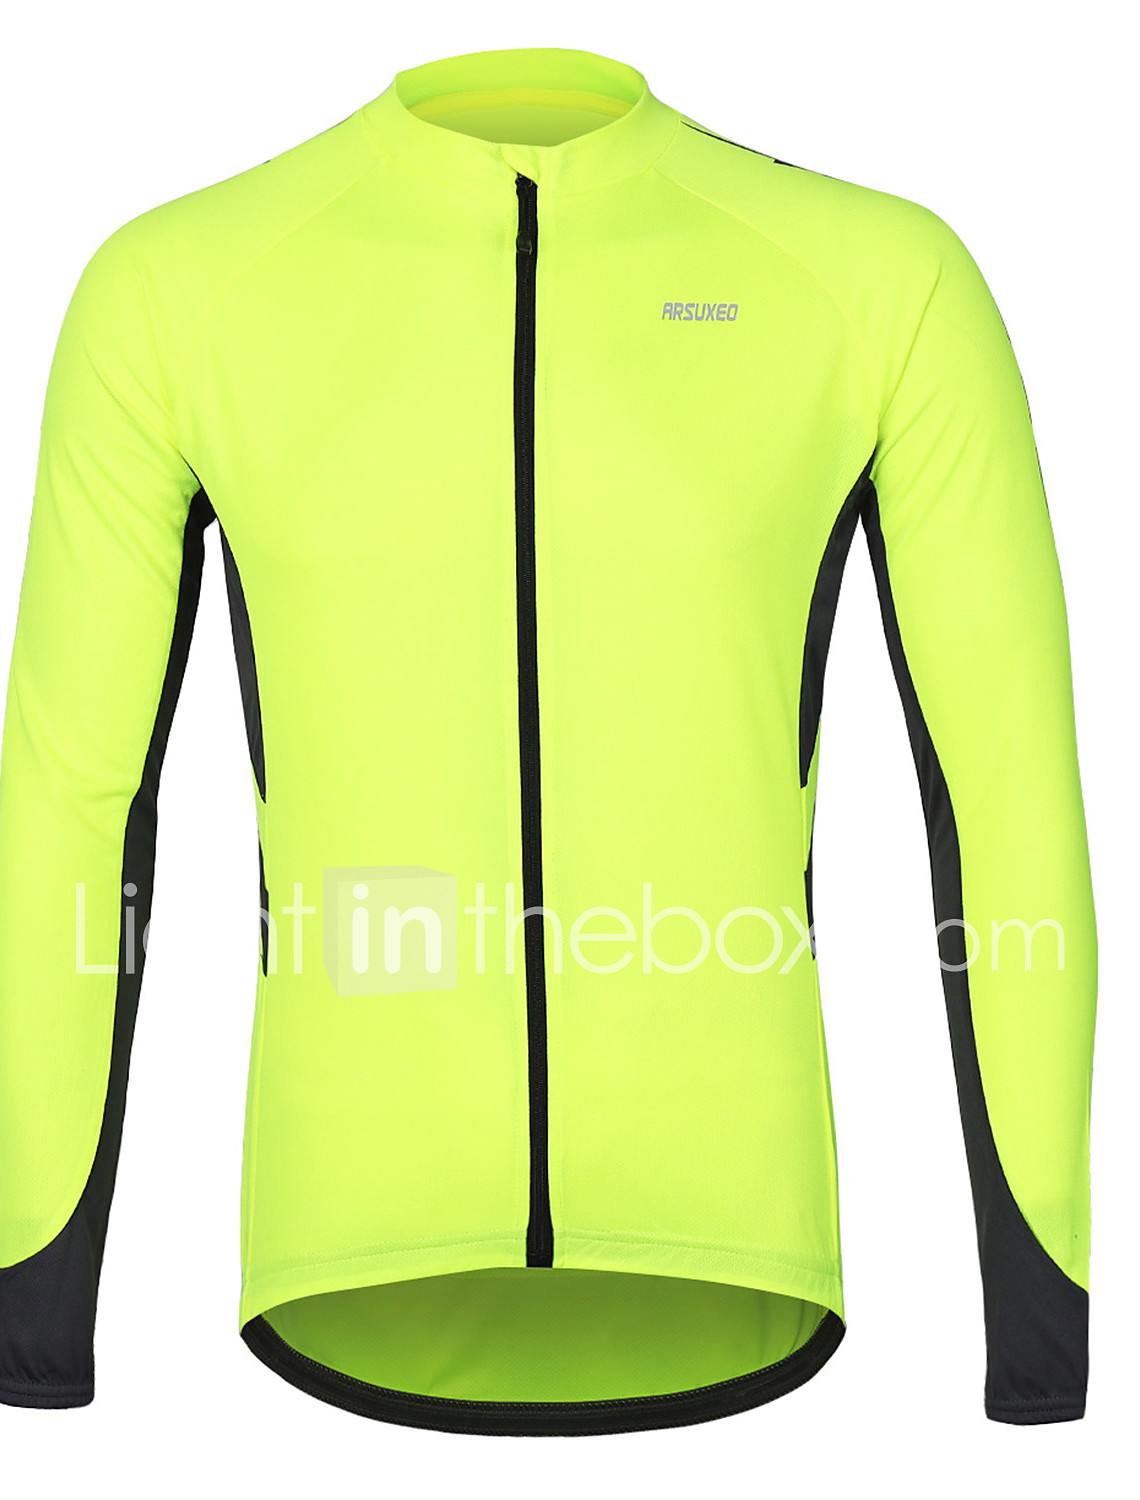 969b03223ef Arsuxeo Men s Long Sleeve Cycling Jersey - Dark Grey Blue Grey Solid Color Bike  Jersey Reflective